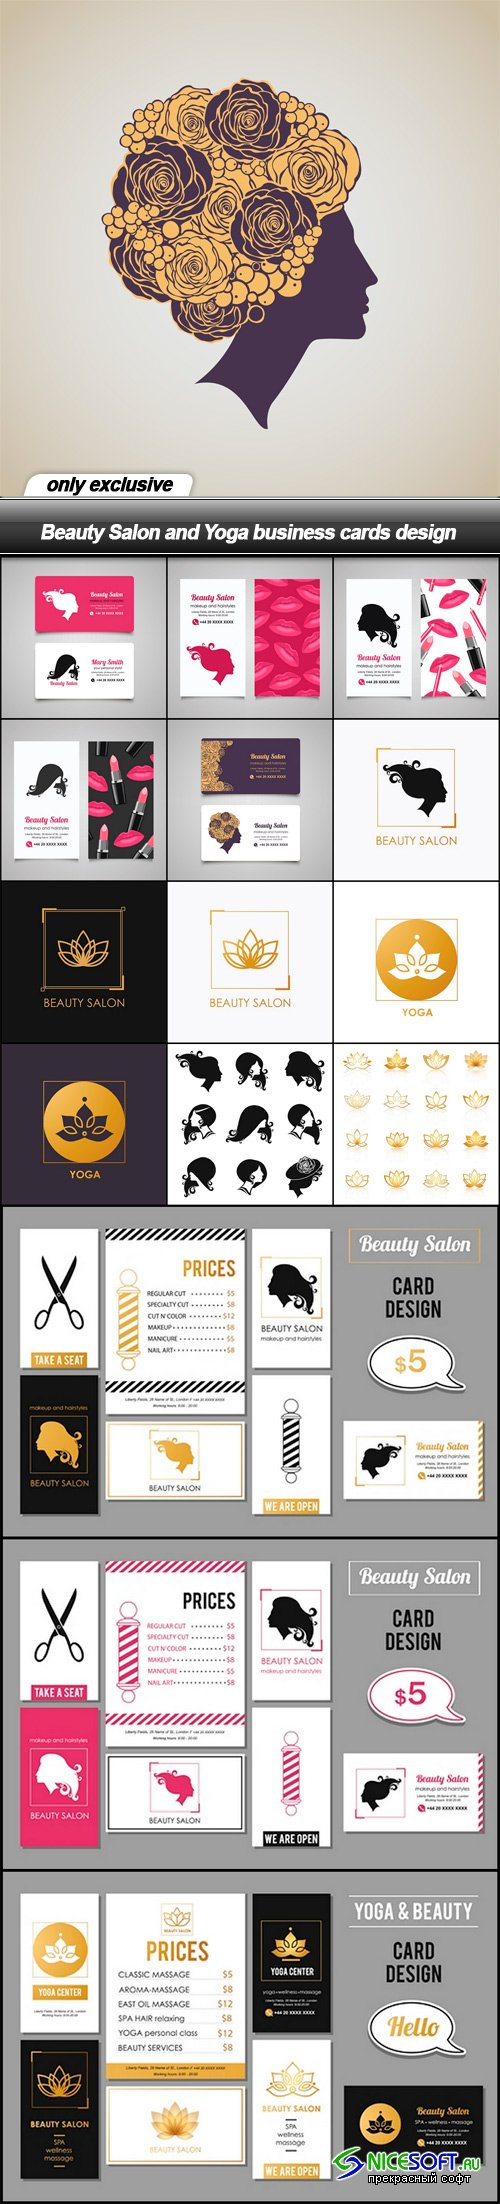 Beauty Salon and Yoga business cards design